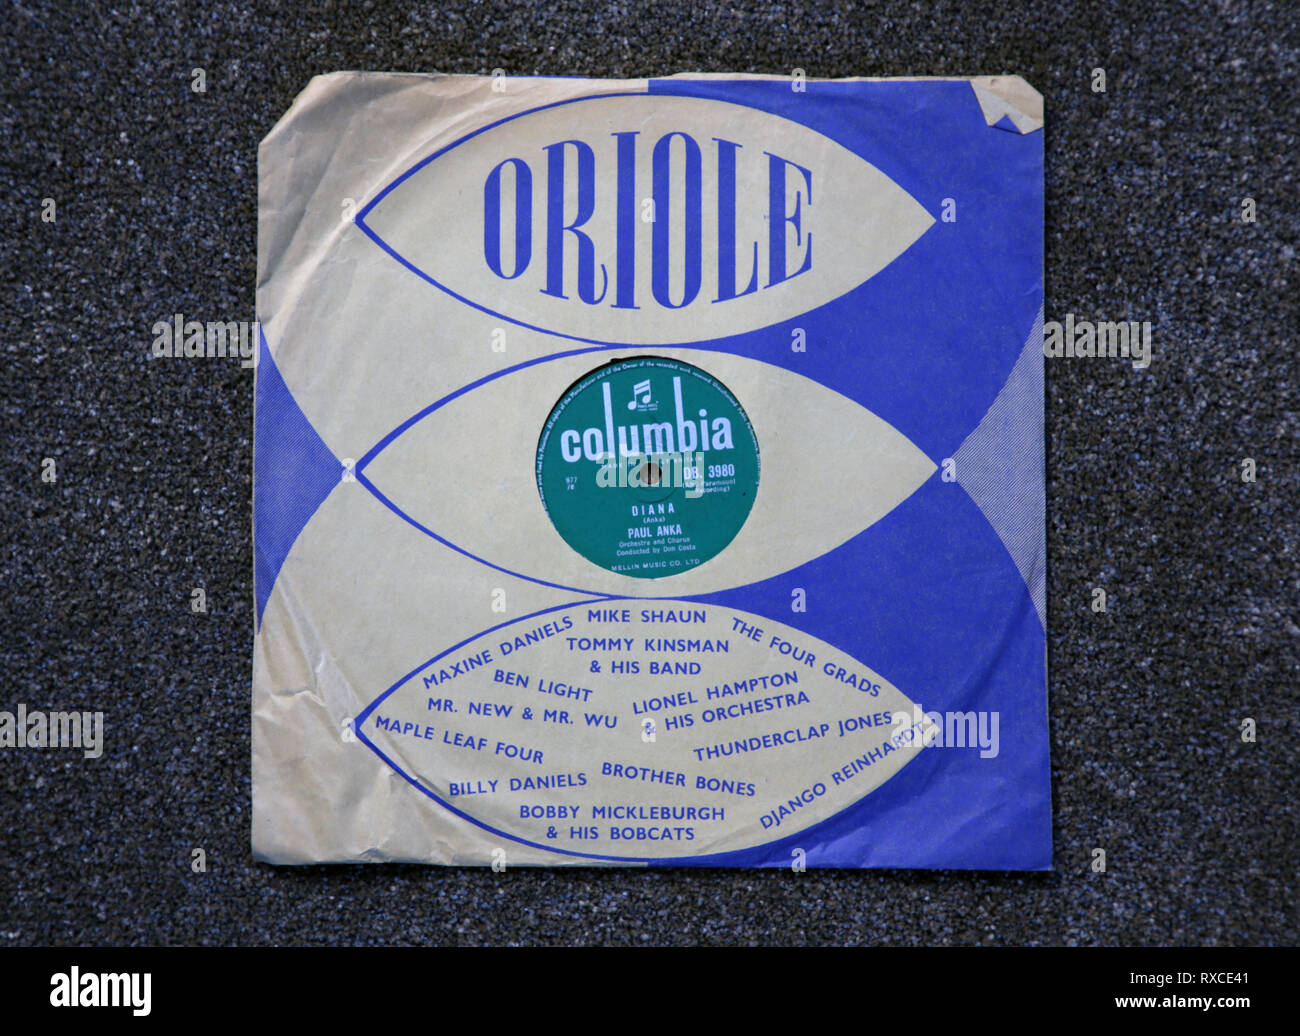 An old 78 rpm gramophone record. - Stock Image